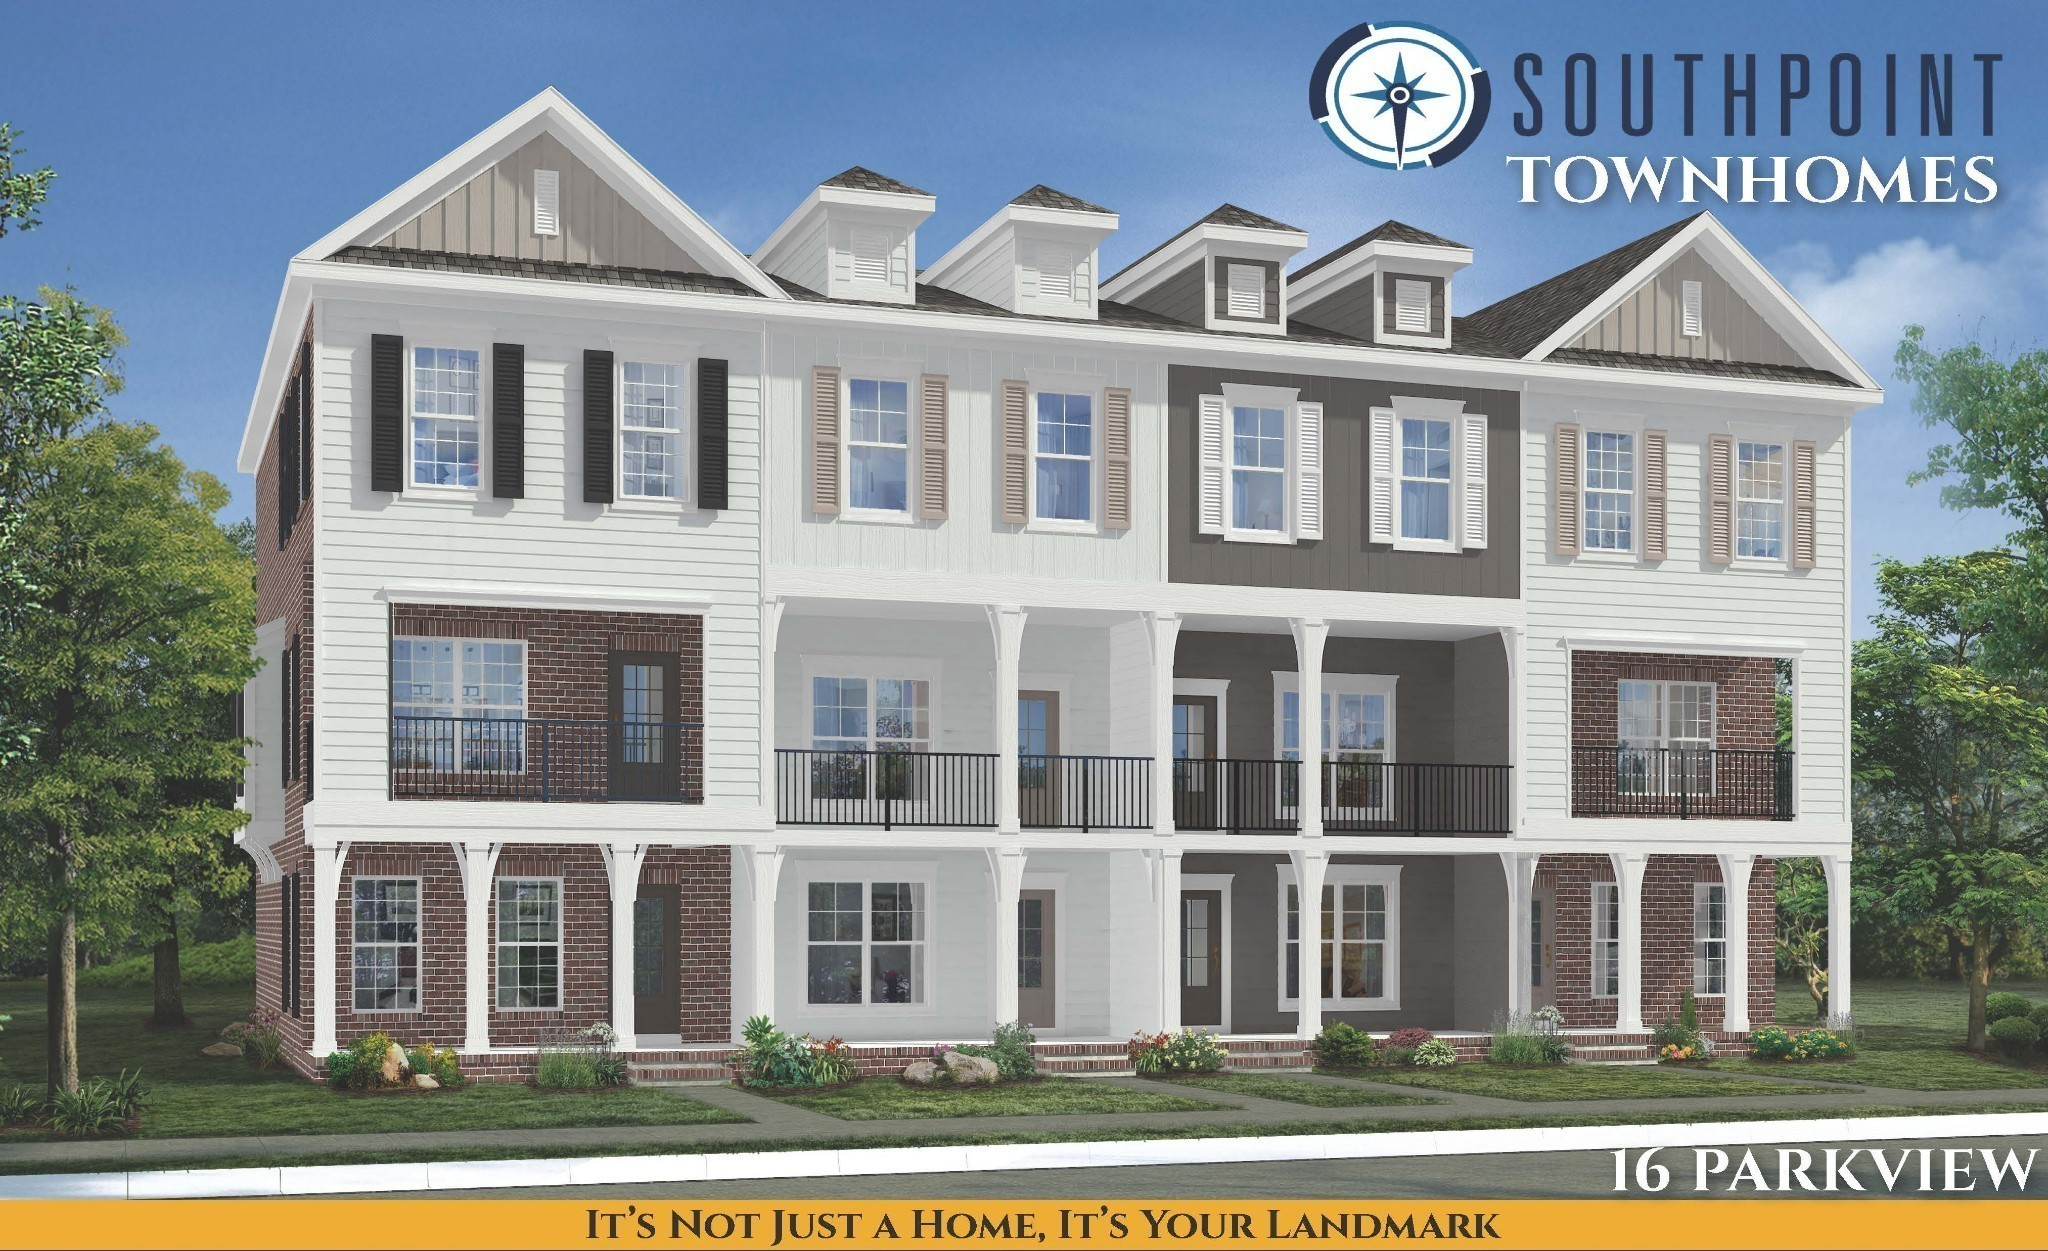 Come see Brentwood's newest luxury townhomes at Southpoint! Each unit features 3-level living with garages and customizable luxury finishes! Walkable community adjacent to brand new shopping center and restaurants/retail. Center Unit.